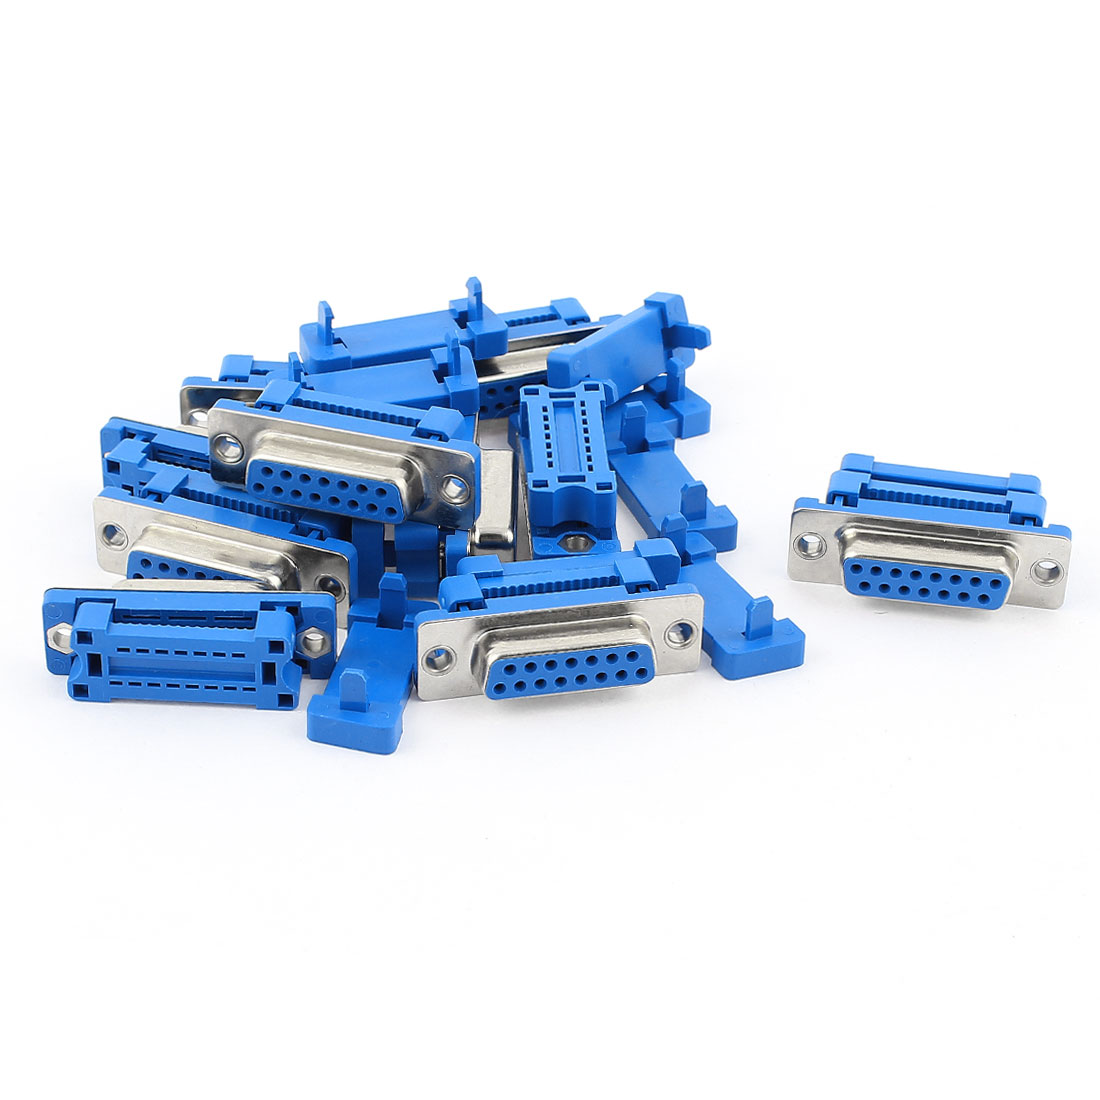 10Pcs D-SUB DB15 15-Pin Female IDC Crimp Connector for Flat Ribbon Cable